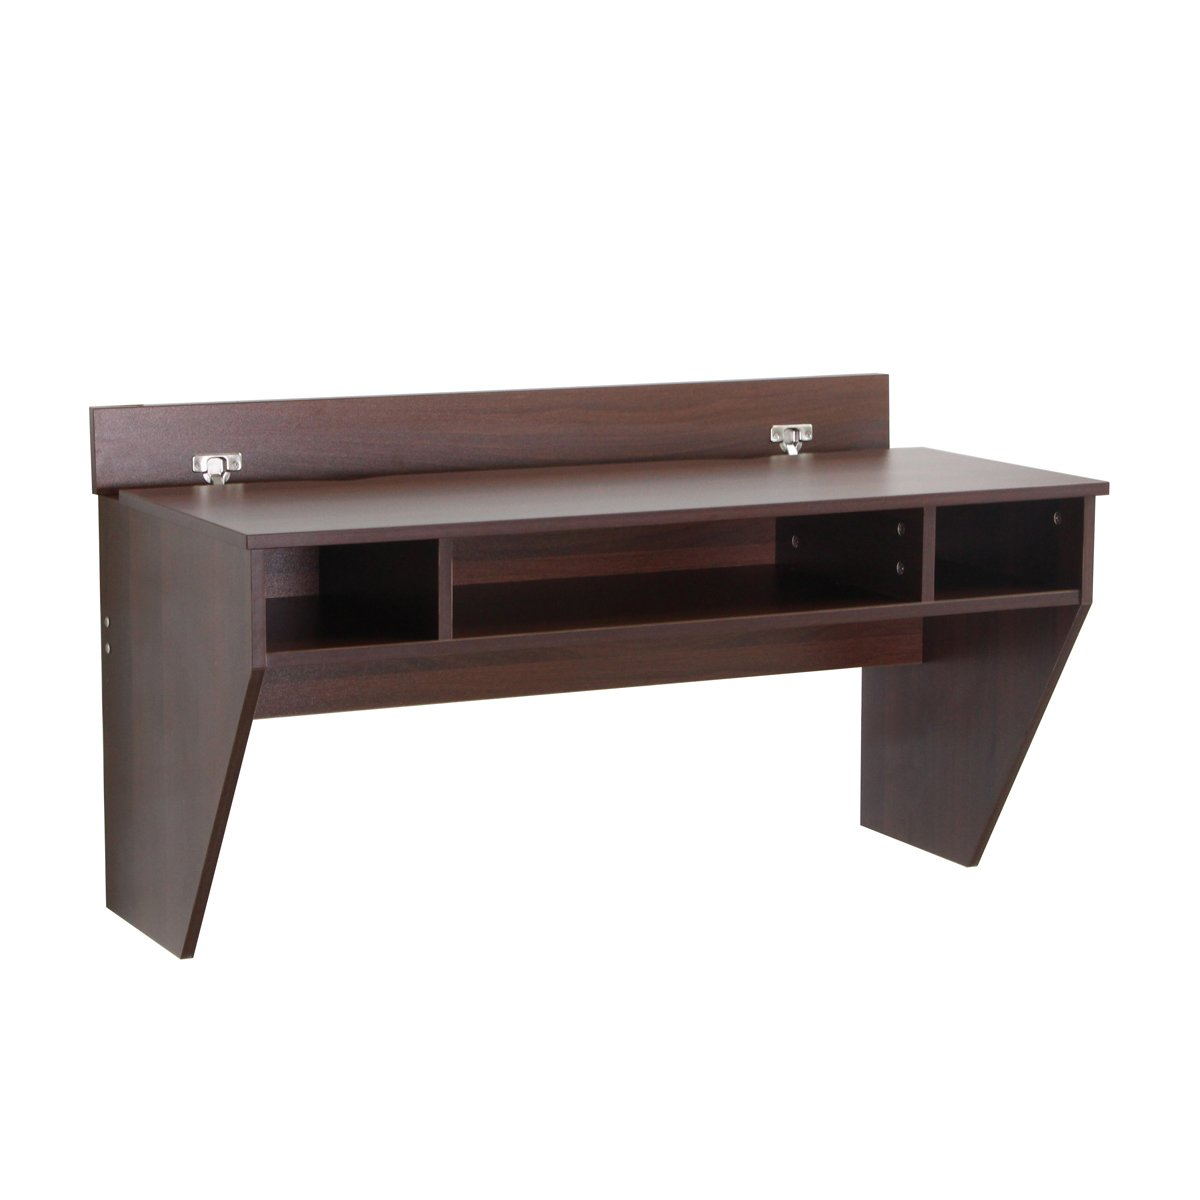 u max wall mounted computer desk work station brown. Black Bedroom Furniture Sets. Home Design Ideas